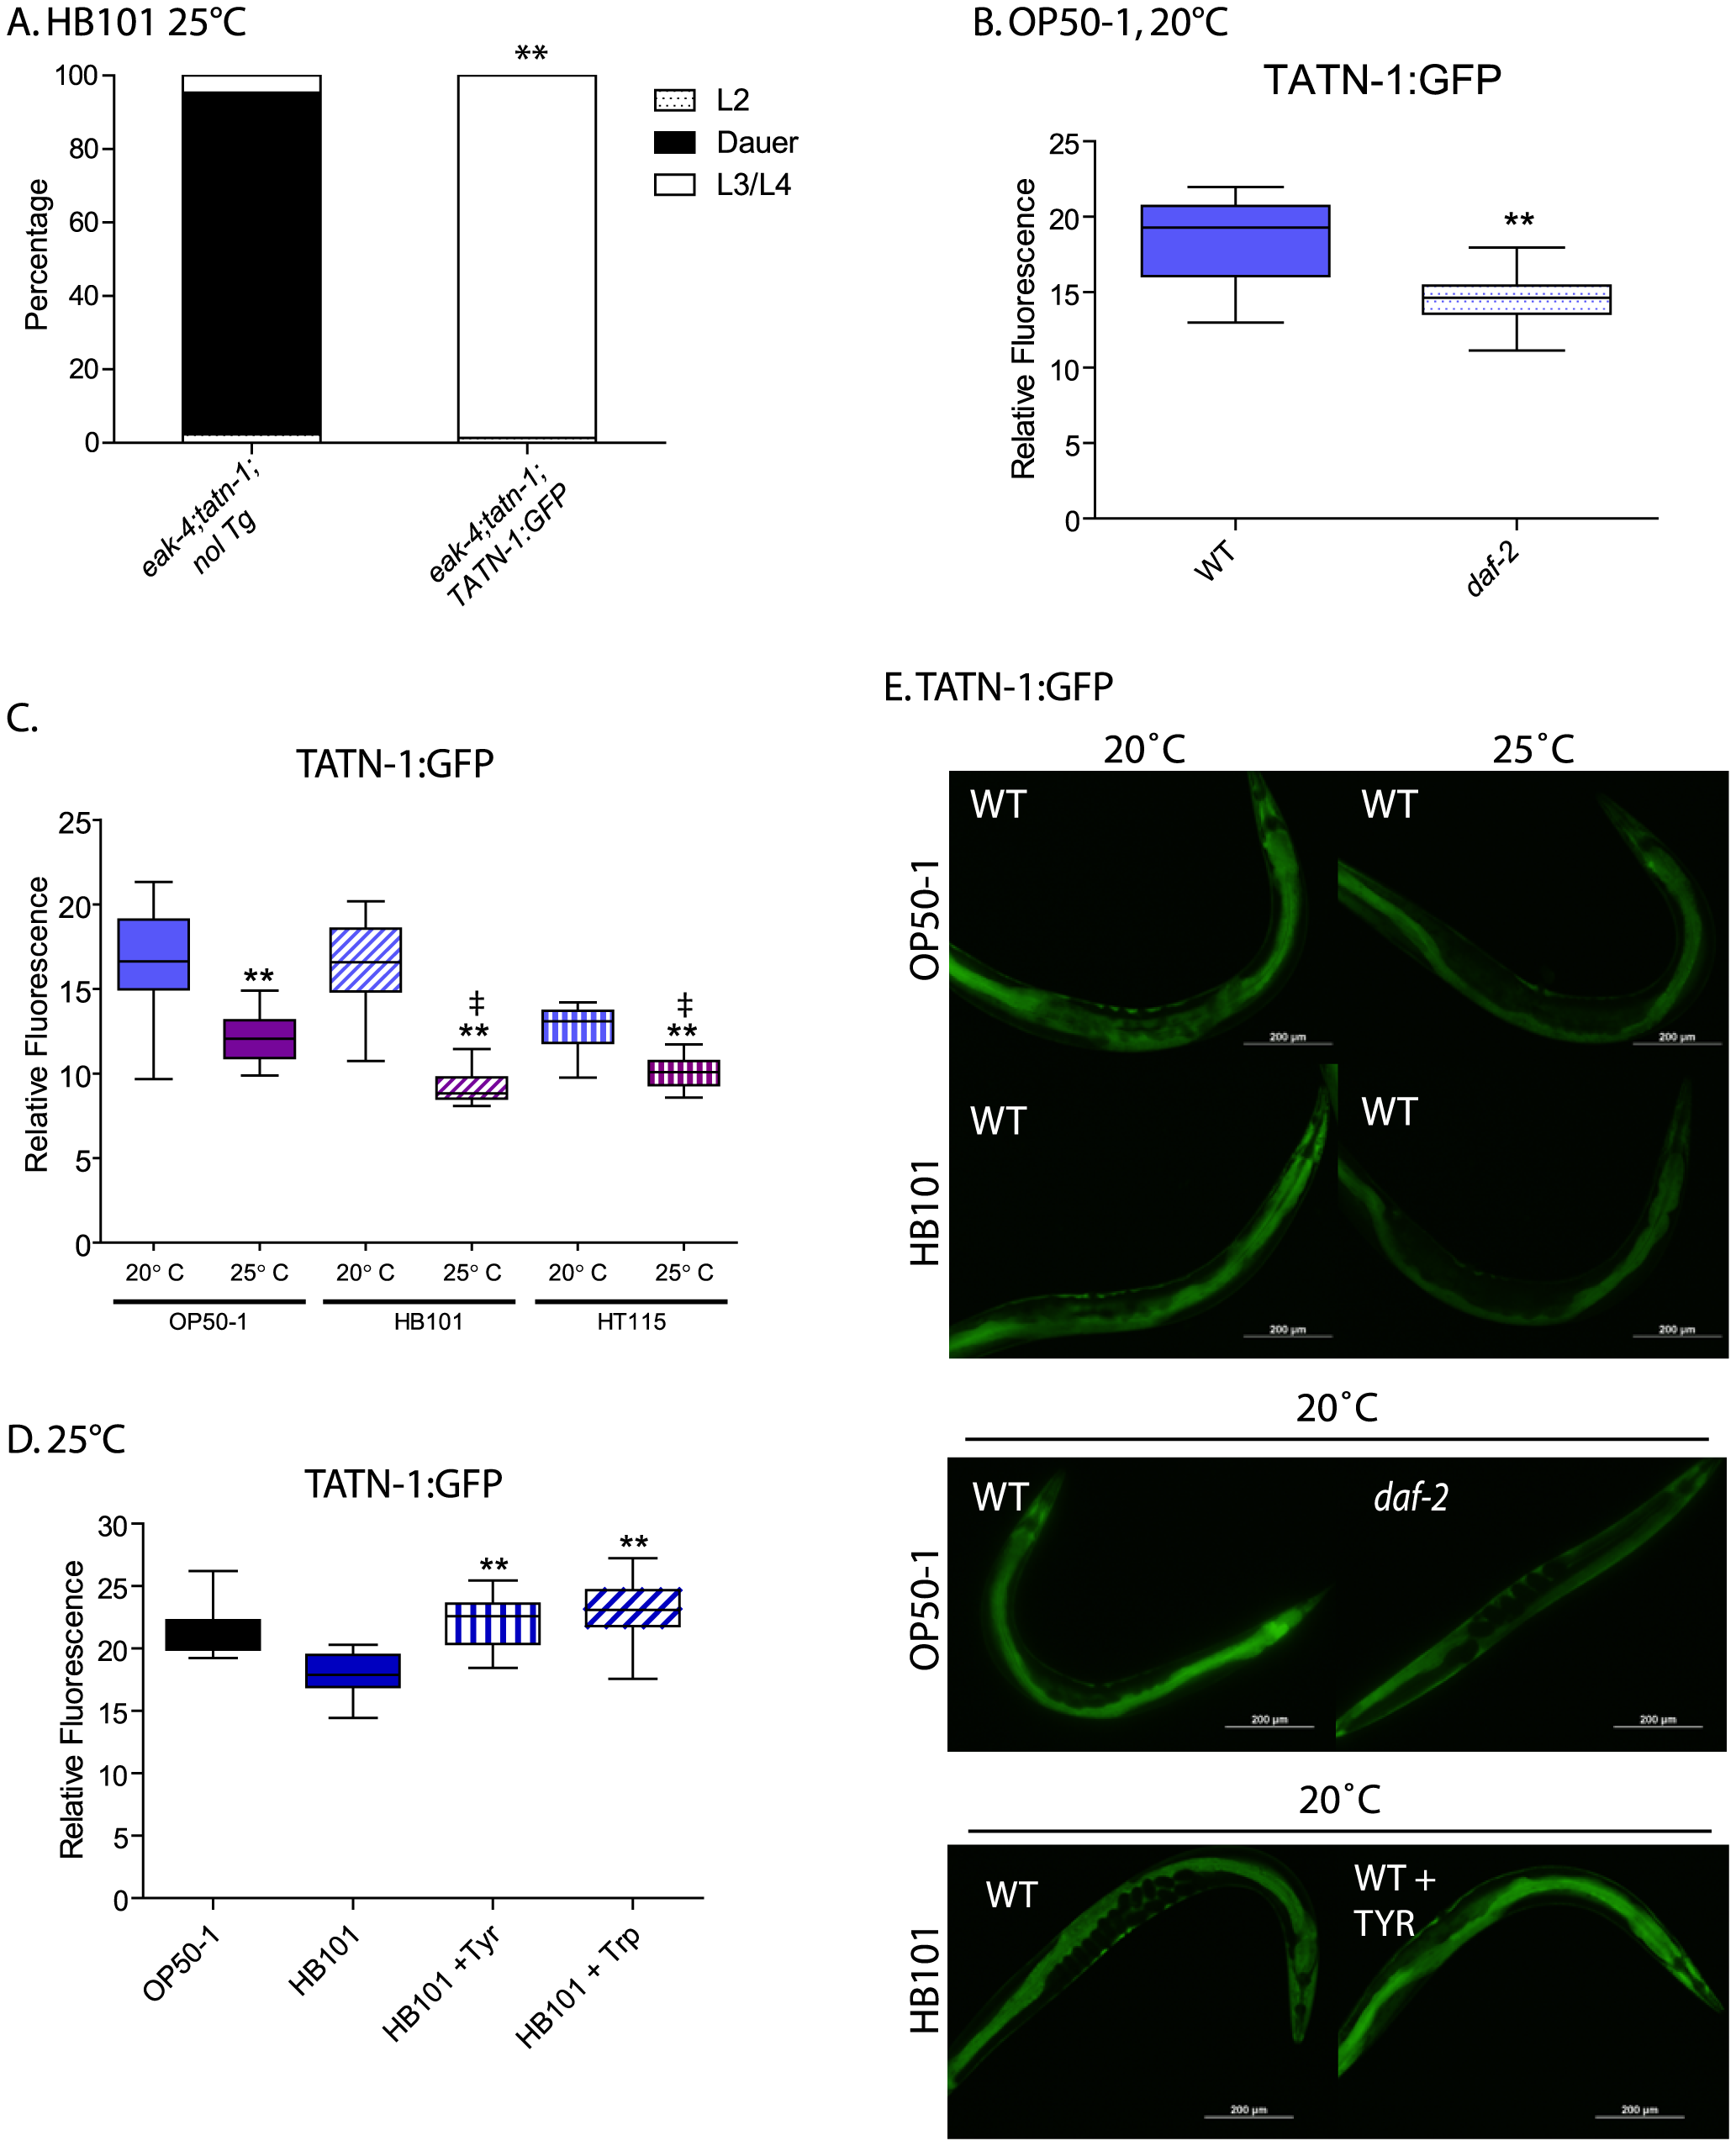 Control of TATN-1 protein expression by <i>daf-2</i>/IGFR signaling, diet and temperature.